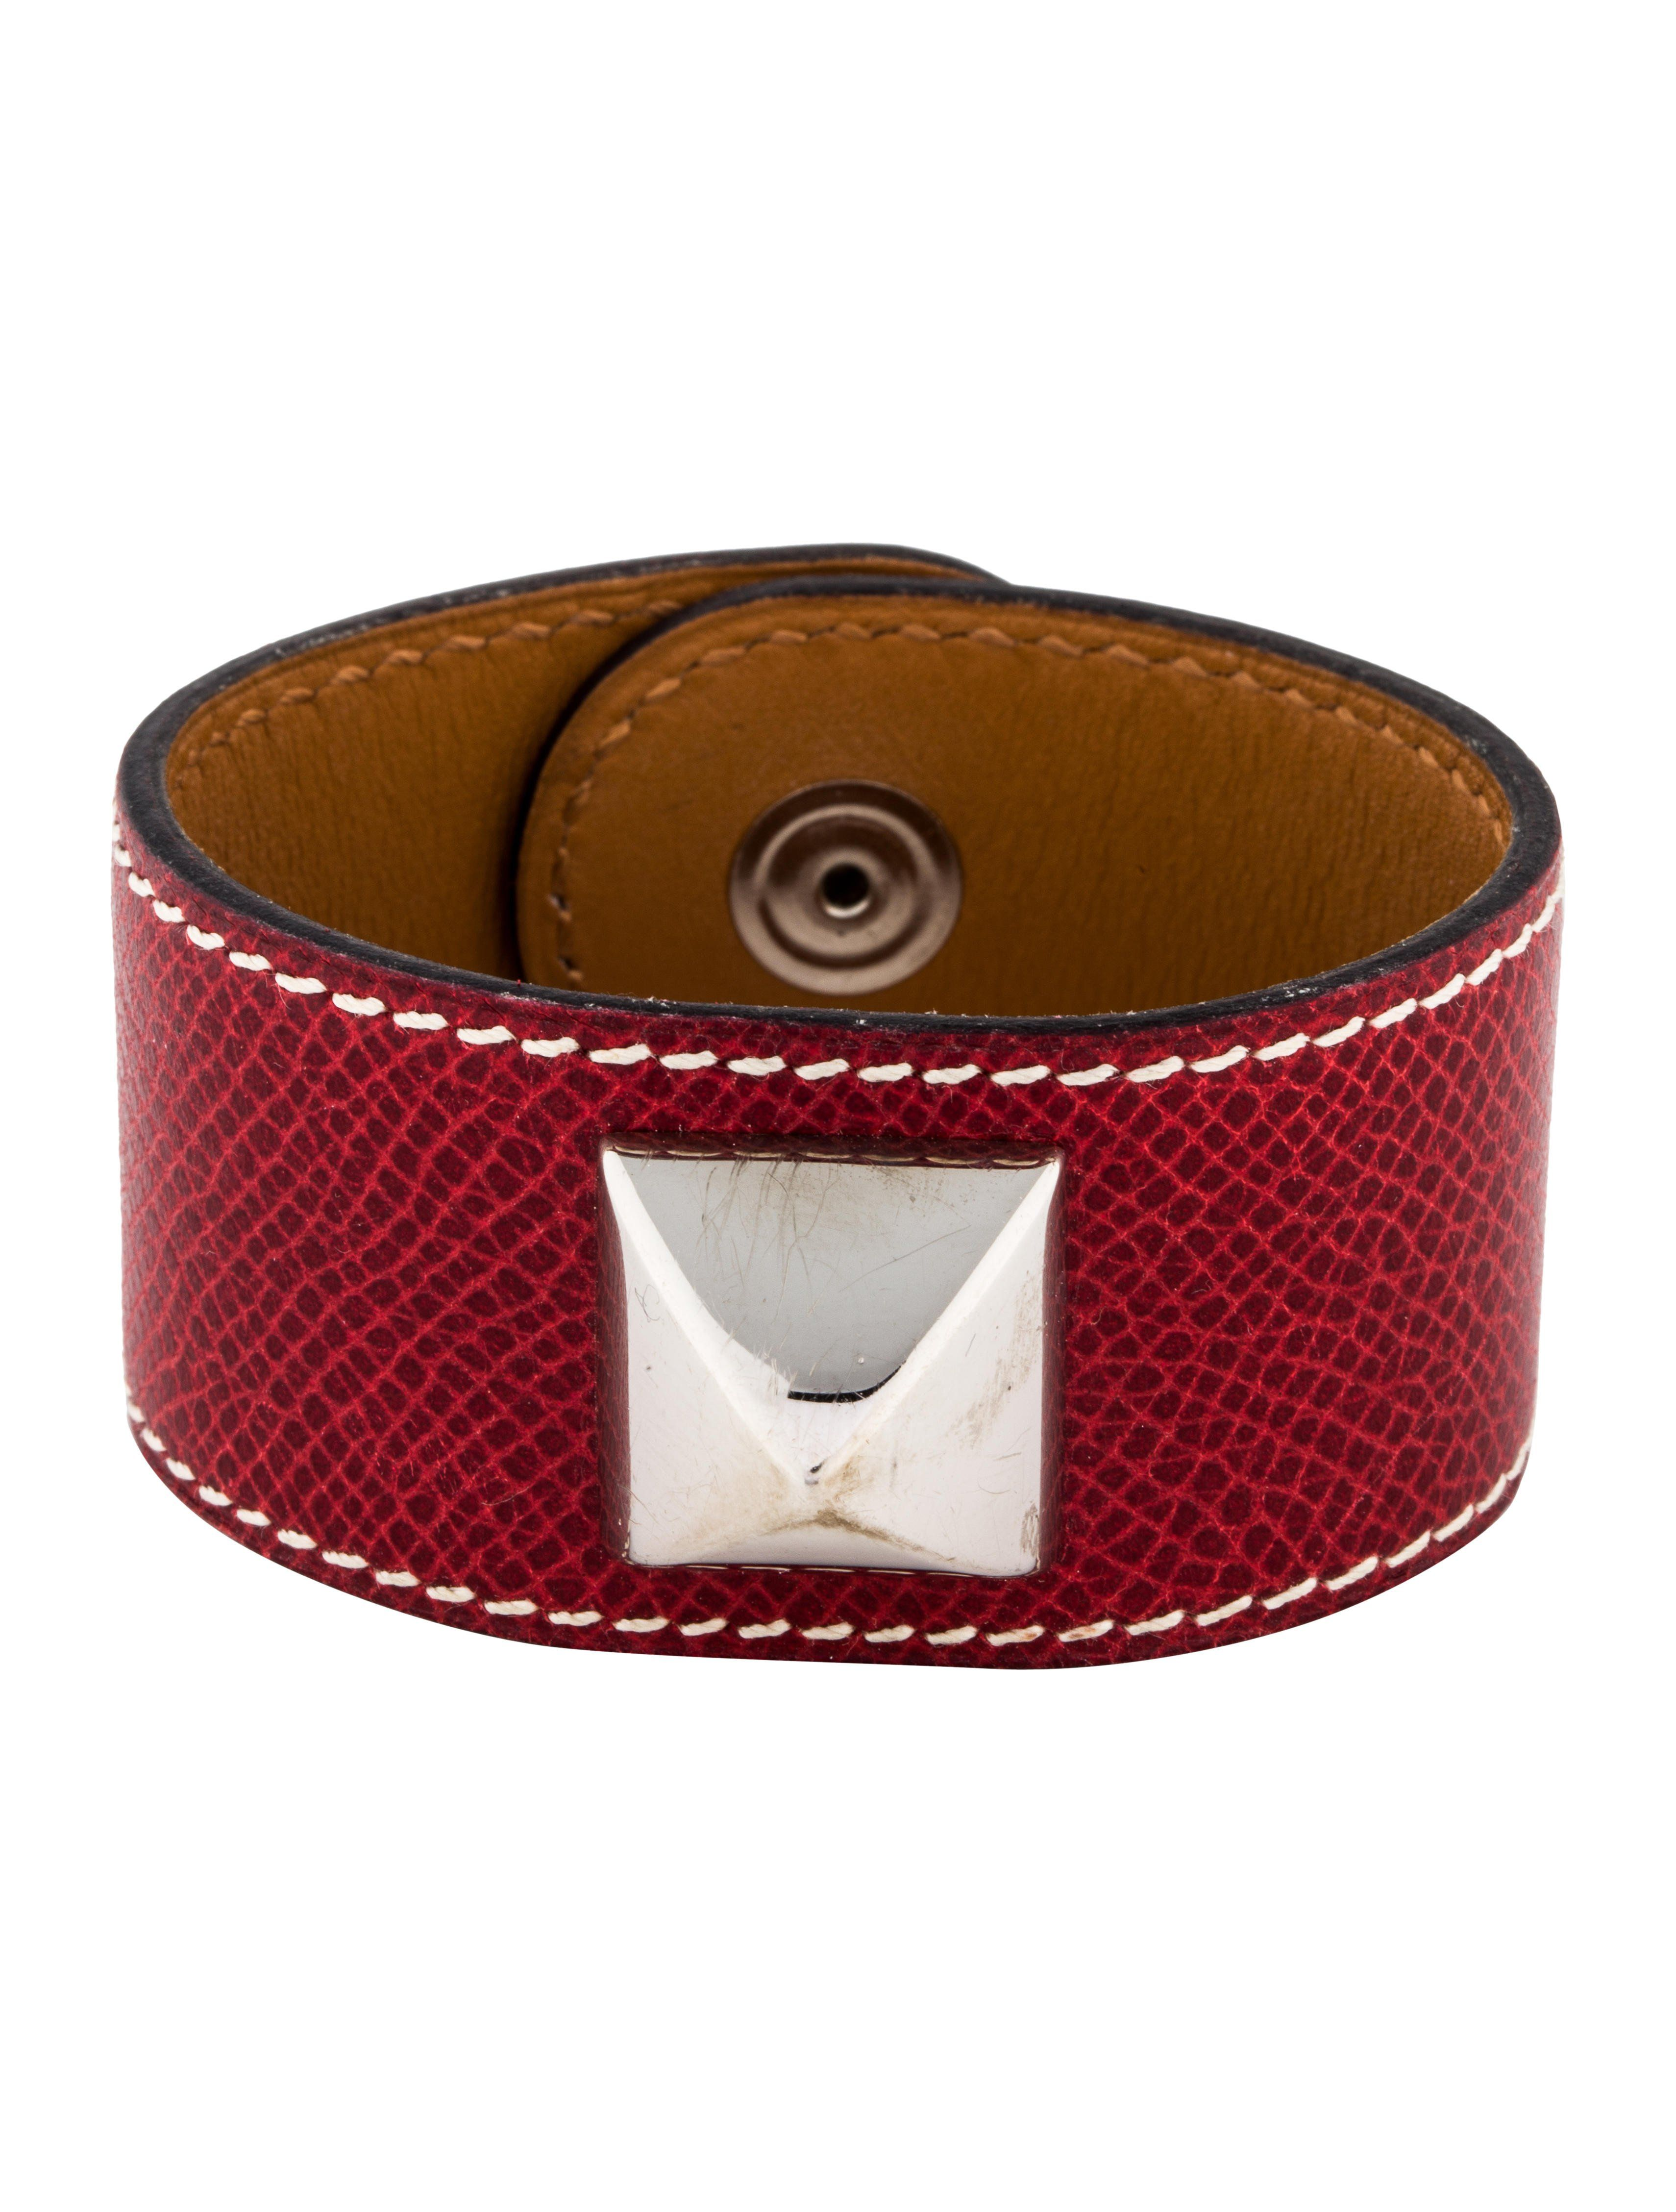 bab721e99bb Palladium-plated Hermès bracelet featuring red leather, Medor pyramid stud  at center and logo engraved snap closure.